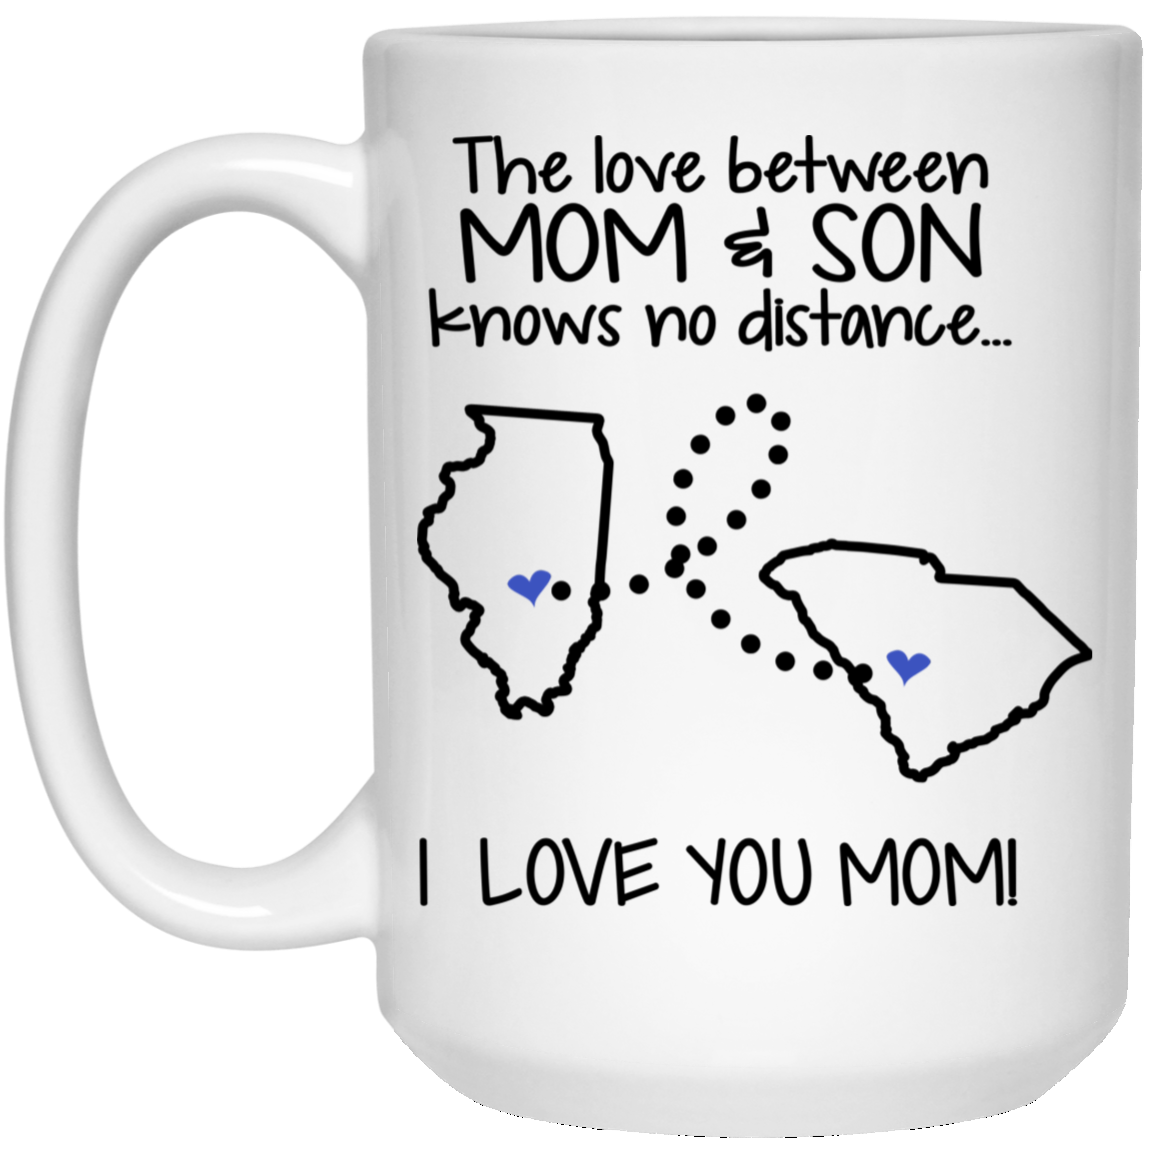 SOUTH CAROLINA ILLINOIS THE LOVE BETWEEN MOM AND SON KNOWS NO DISTANCE I LOVE YOU MOM